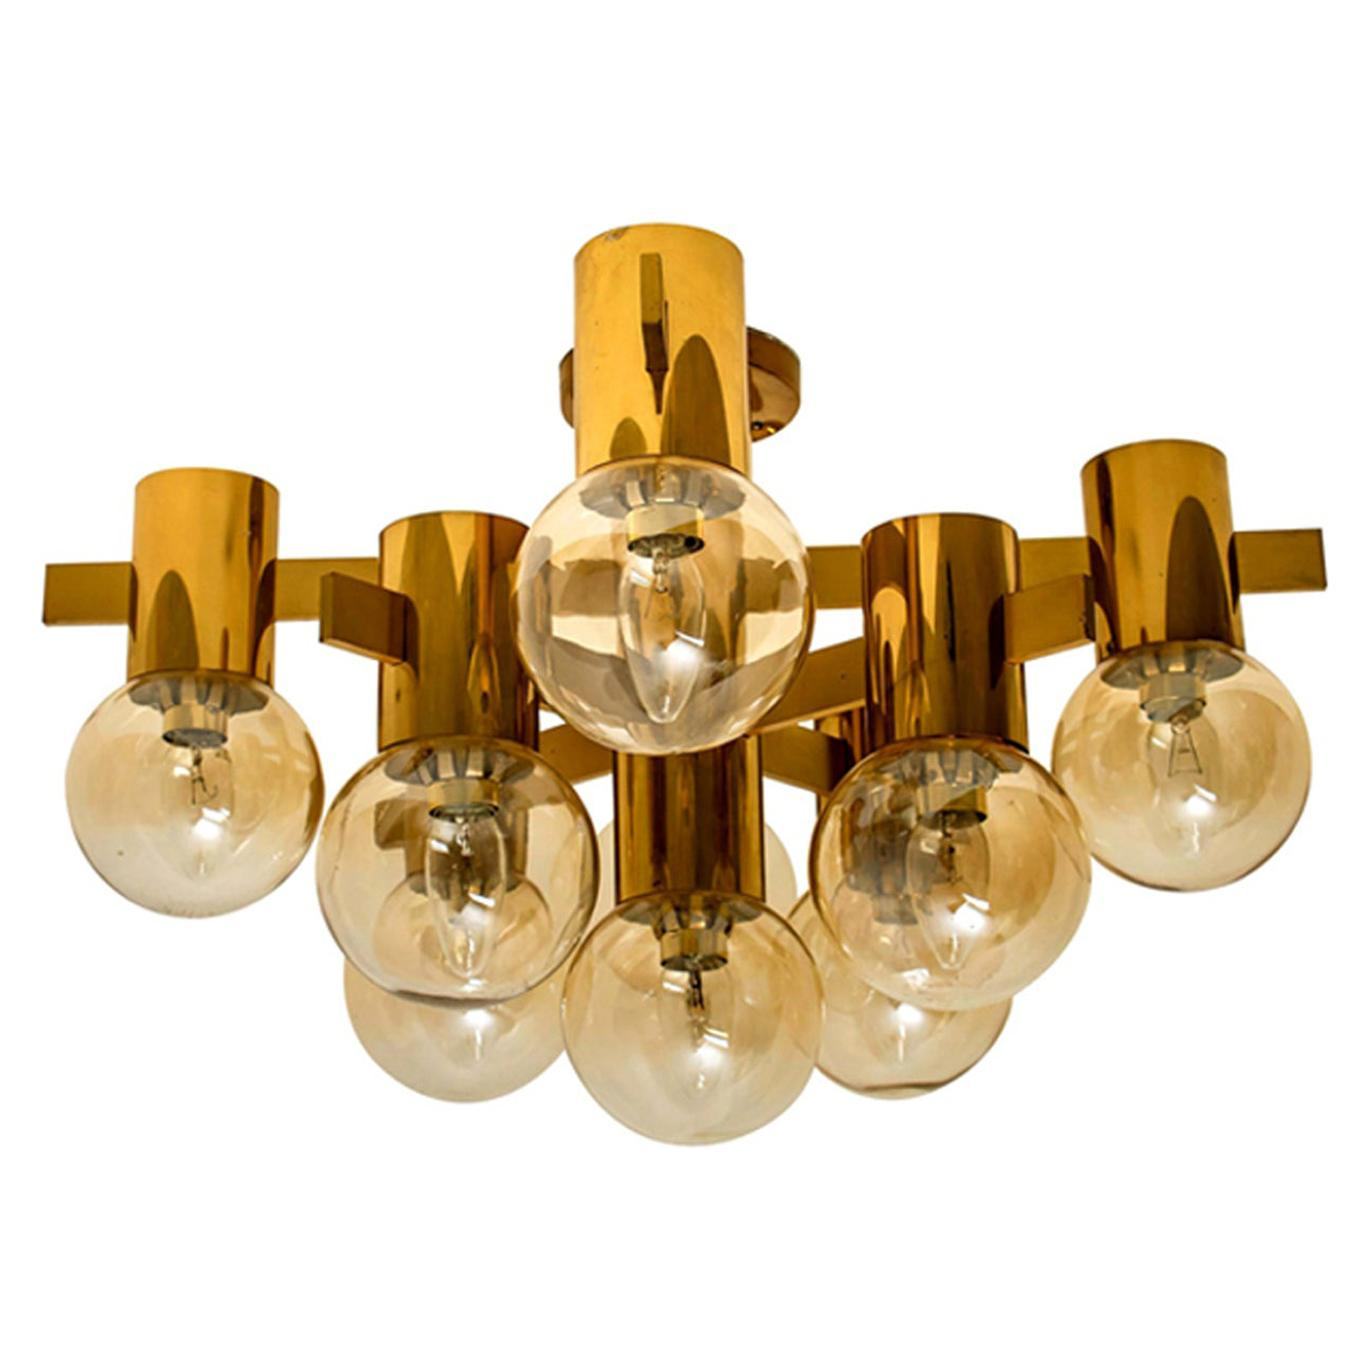 1 of the 3 Brass and Glass Light Fixtures in the Style of Jakobsson, 1960s